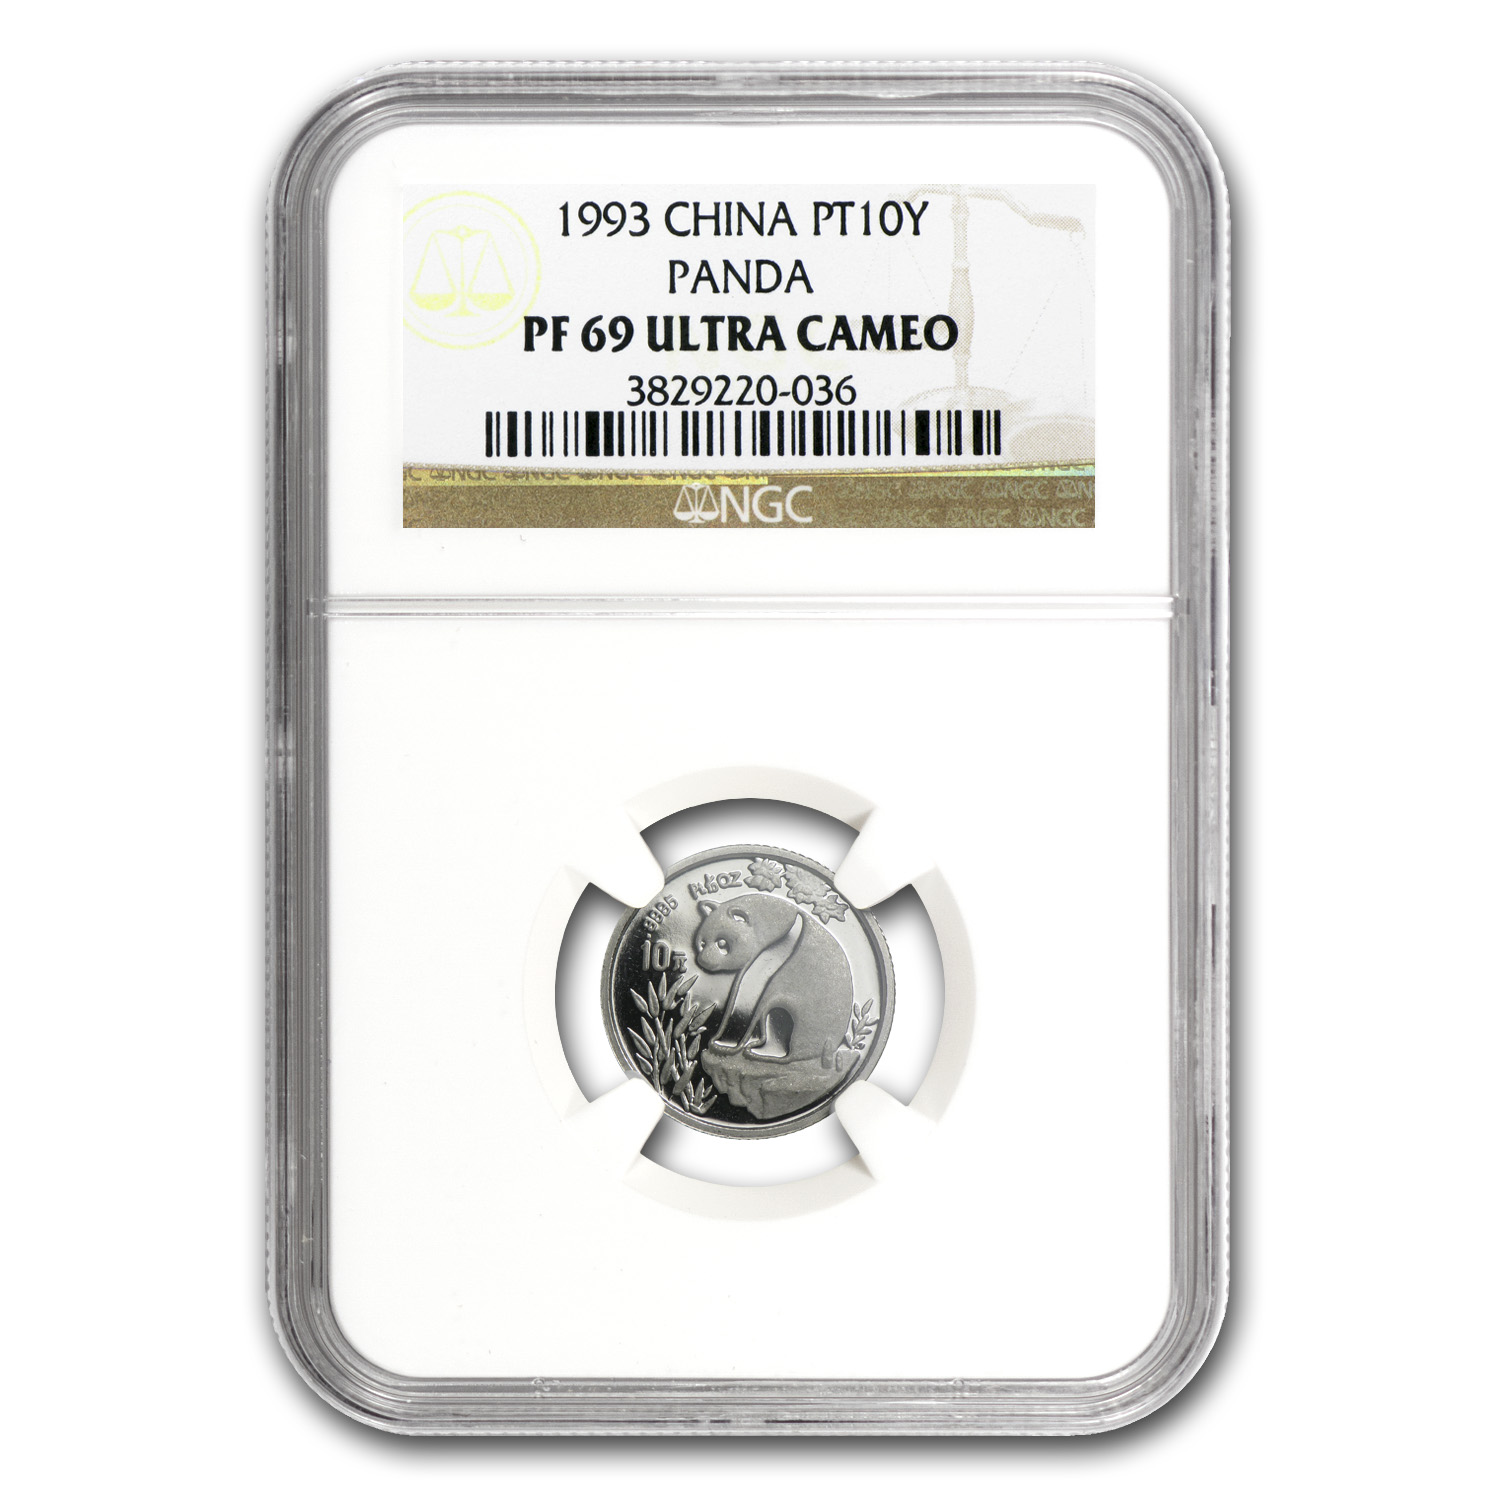 1993 China 1/10 oz Proof Platinum Panda PF-69 NGC